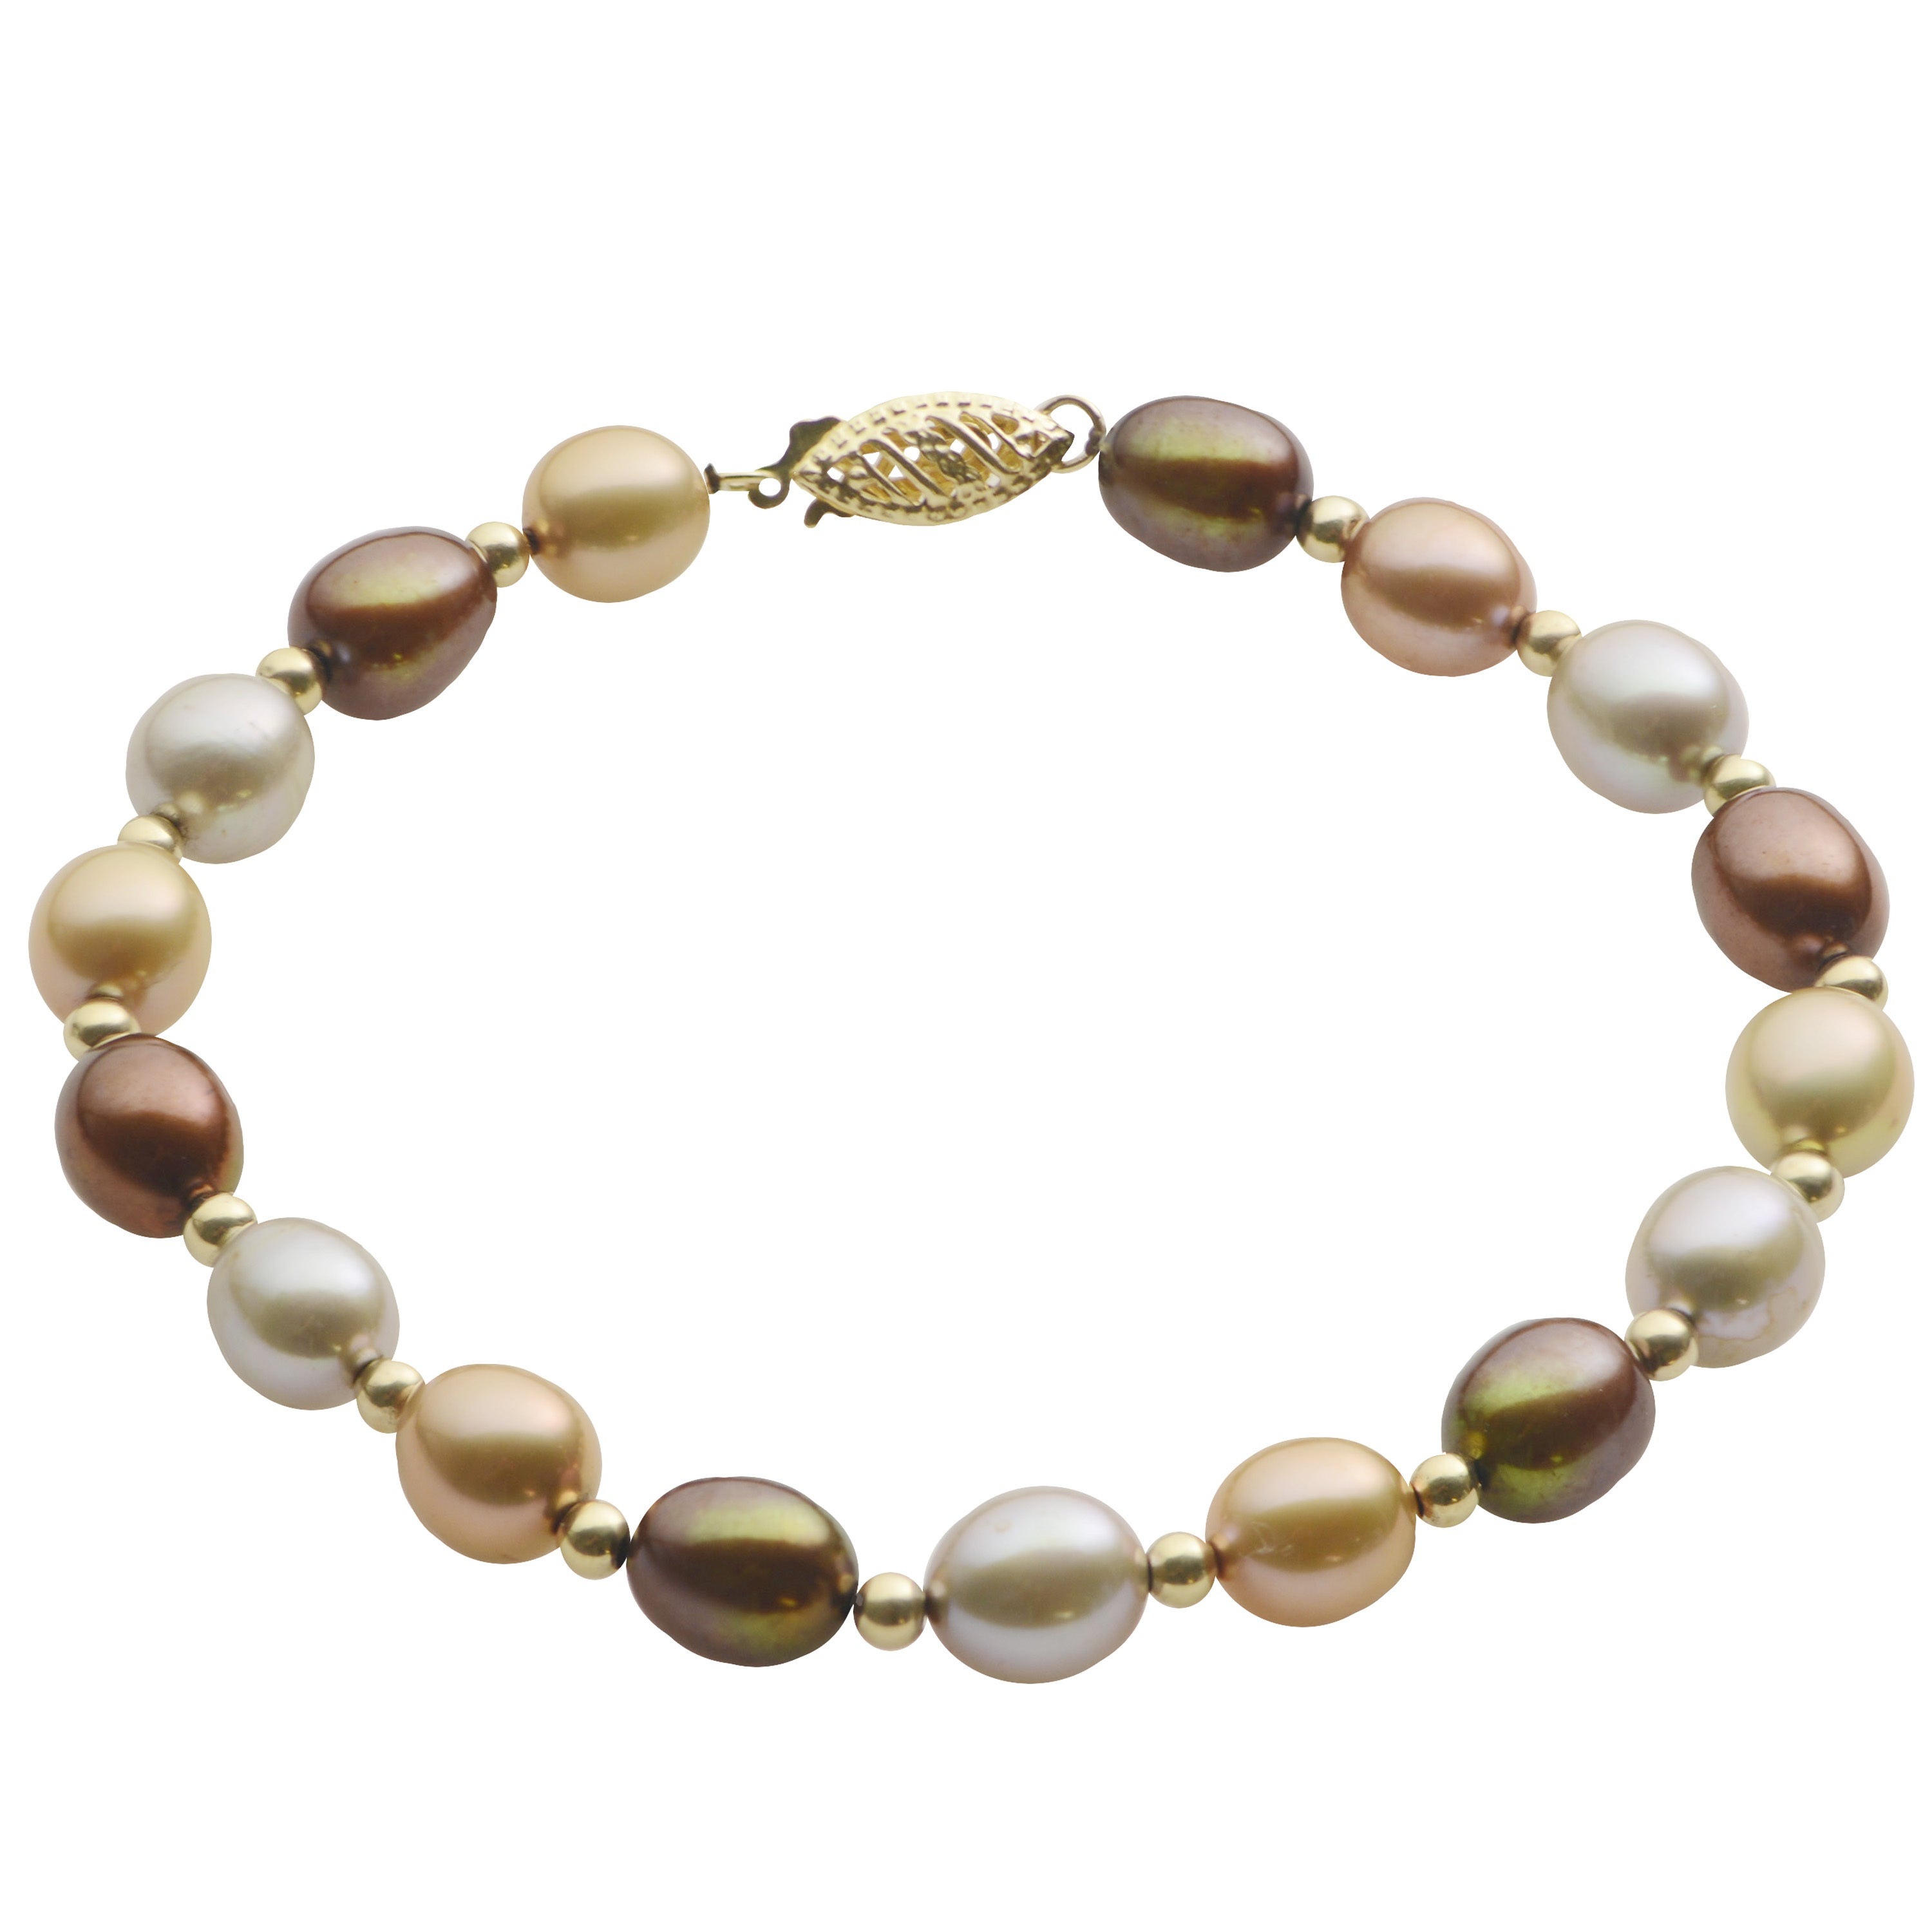 14K White Gold Station Anklet Bracelet With Freshwater Pearls 9.5 Inches